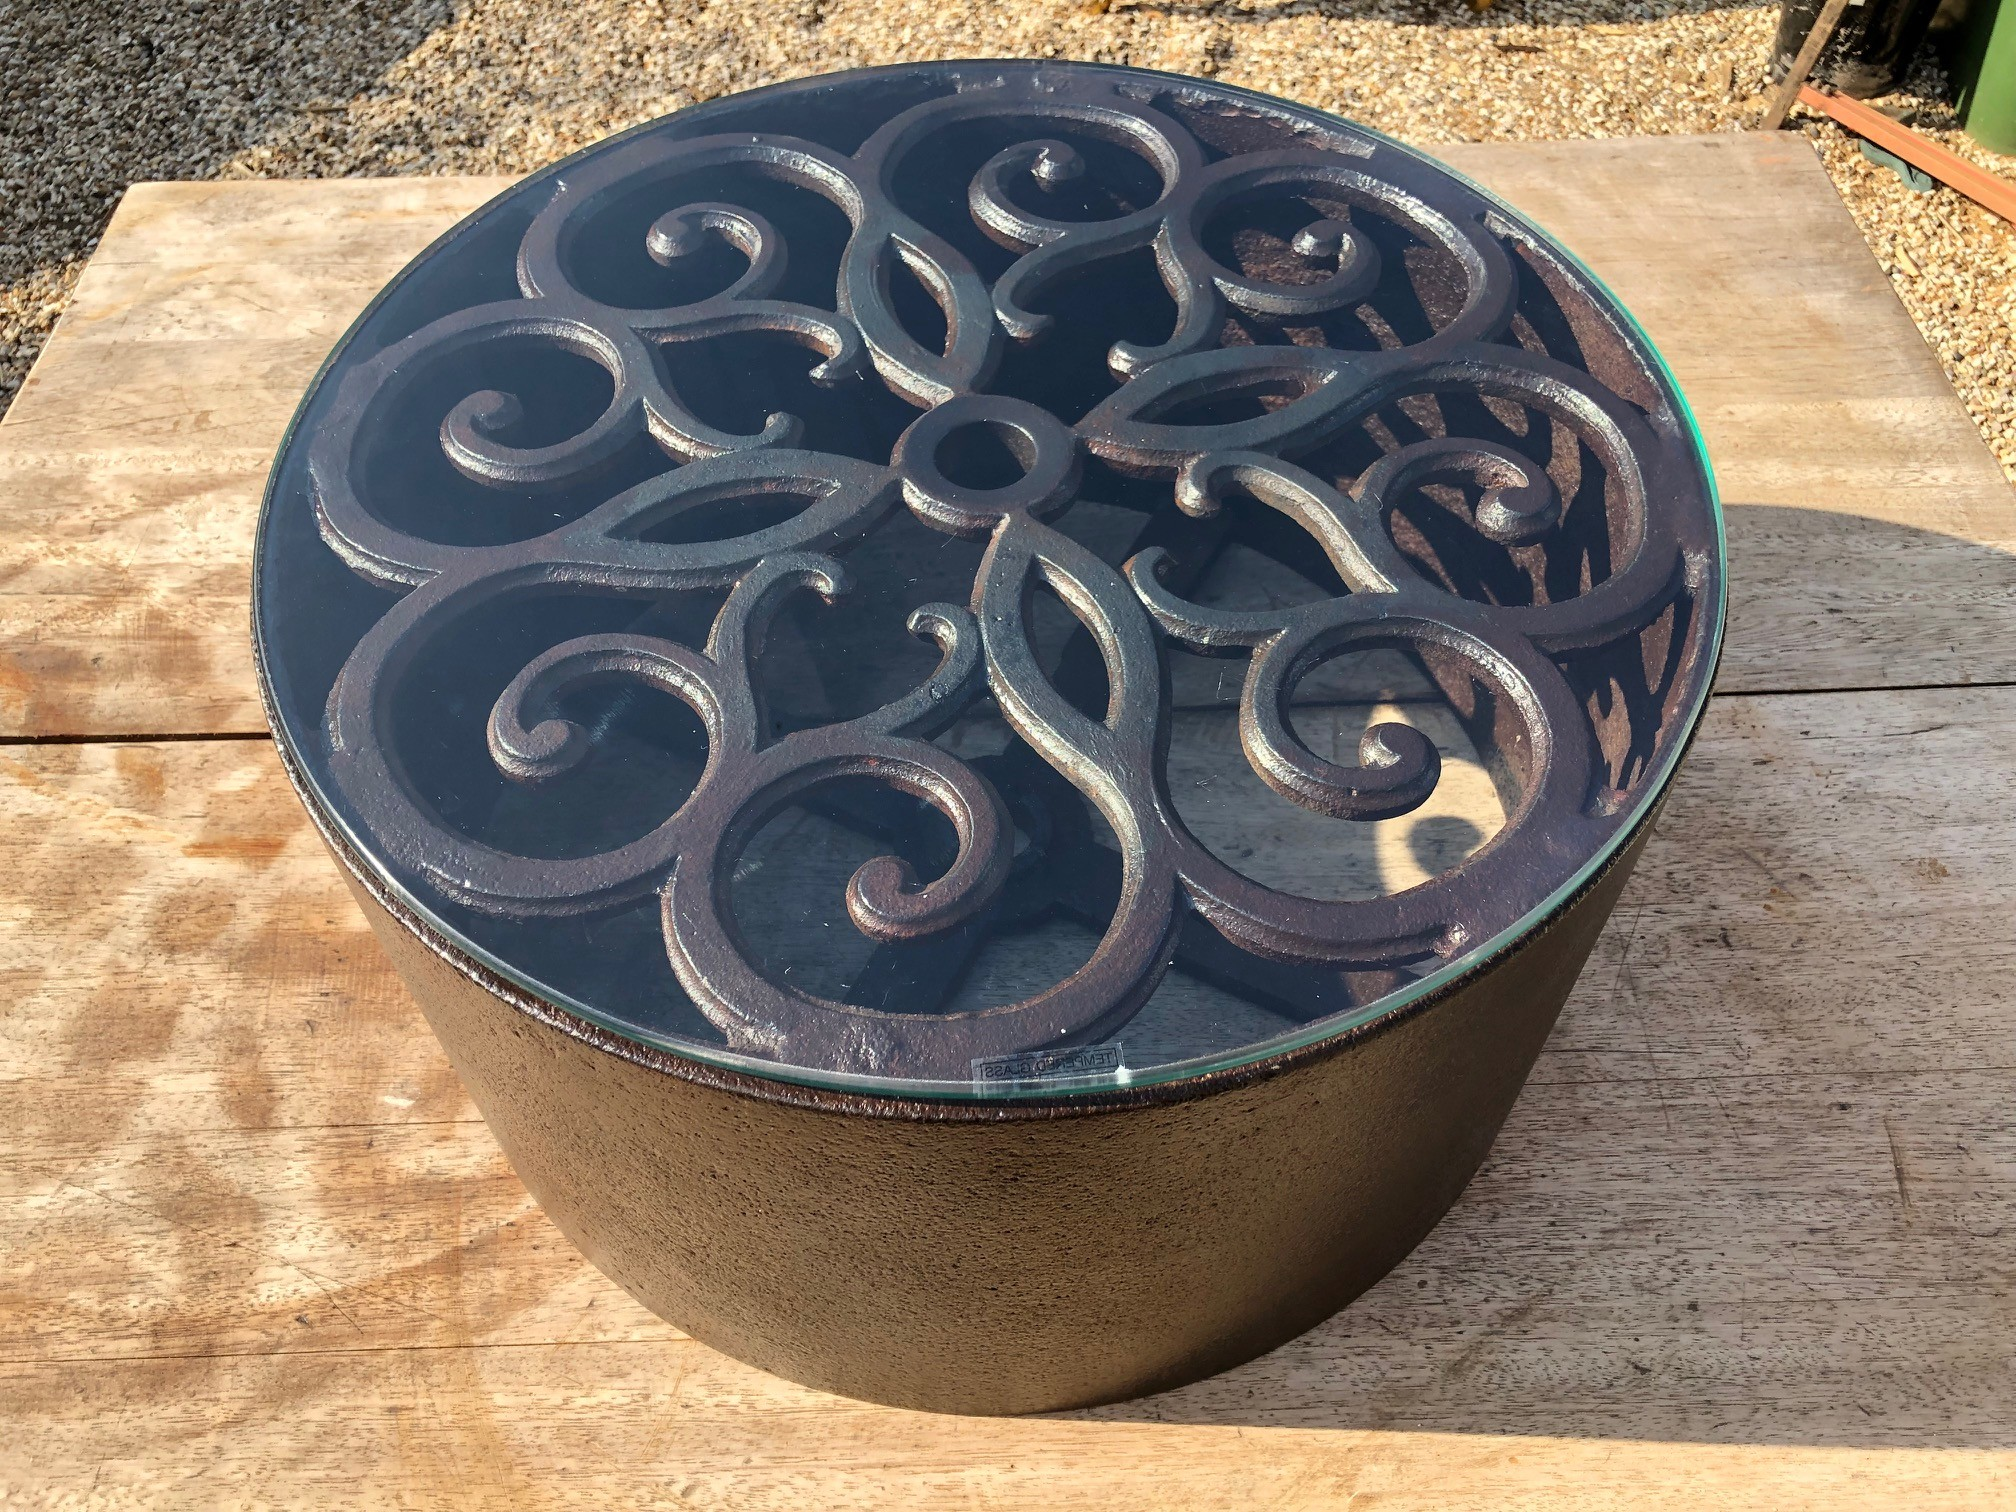 occasional tables - decorative cast iron roller & glass  - pair available